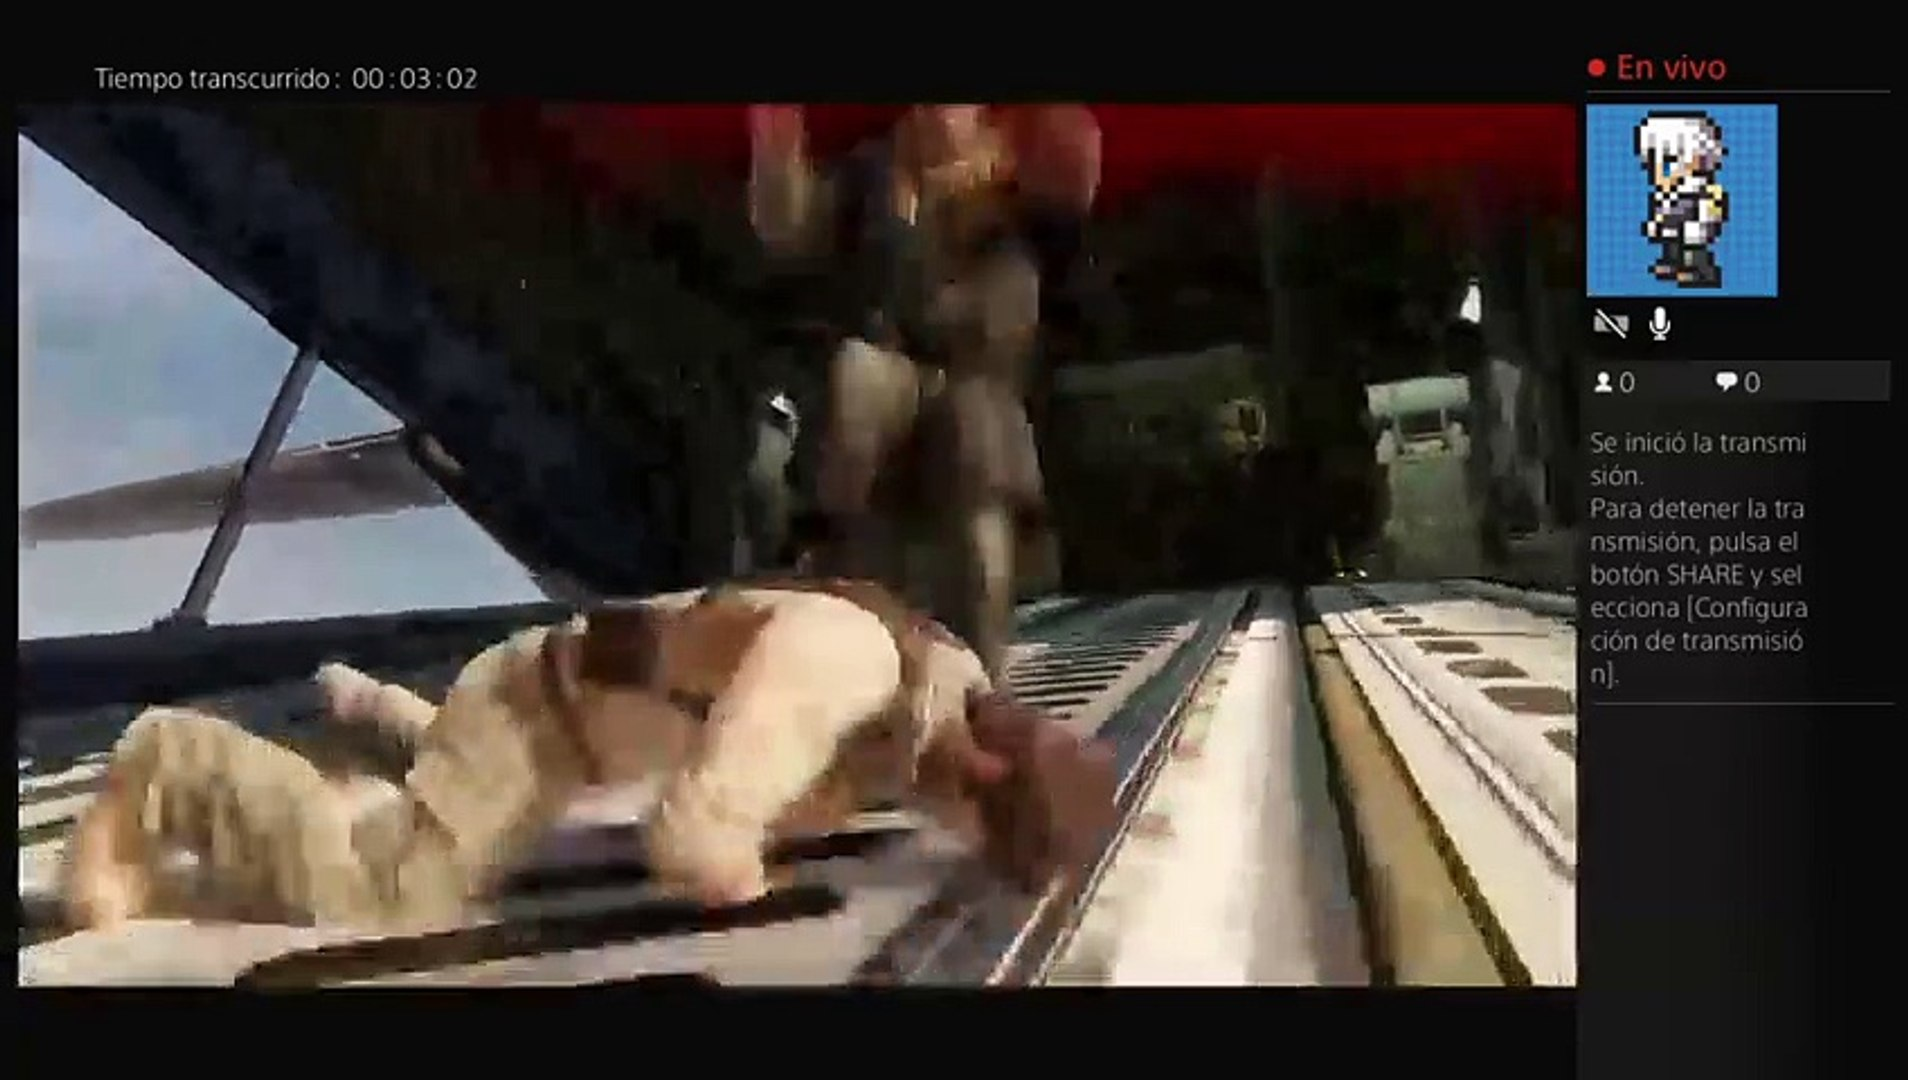 Uncharted Glitches in live